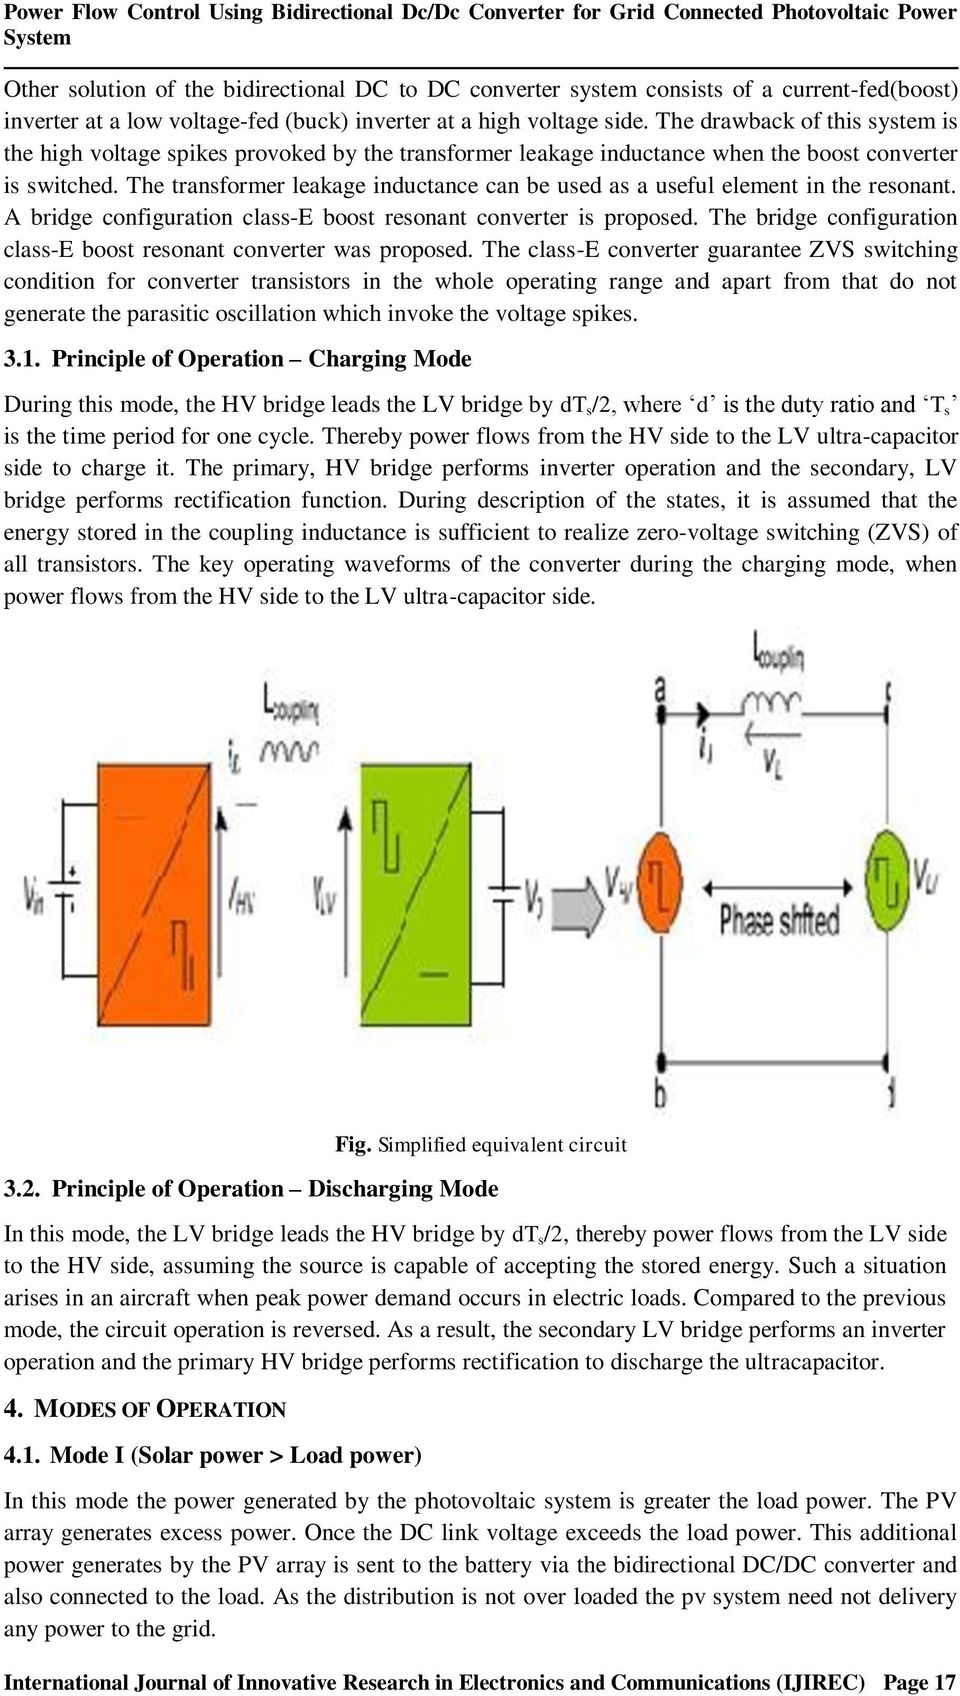 Power Flow Control Using Bidirectional Dc Converter For Grid Solar Panel Optimizer Circuit Electronic Projects The Drawback Of This System Is High Voltage Spikes Provoked By Transformer Leakage Inductance